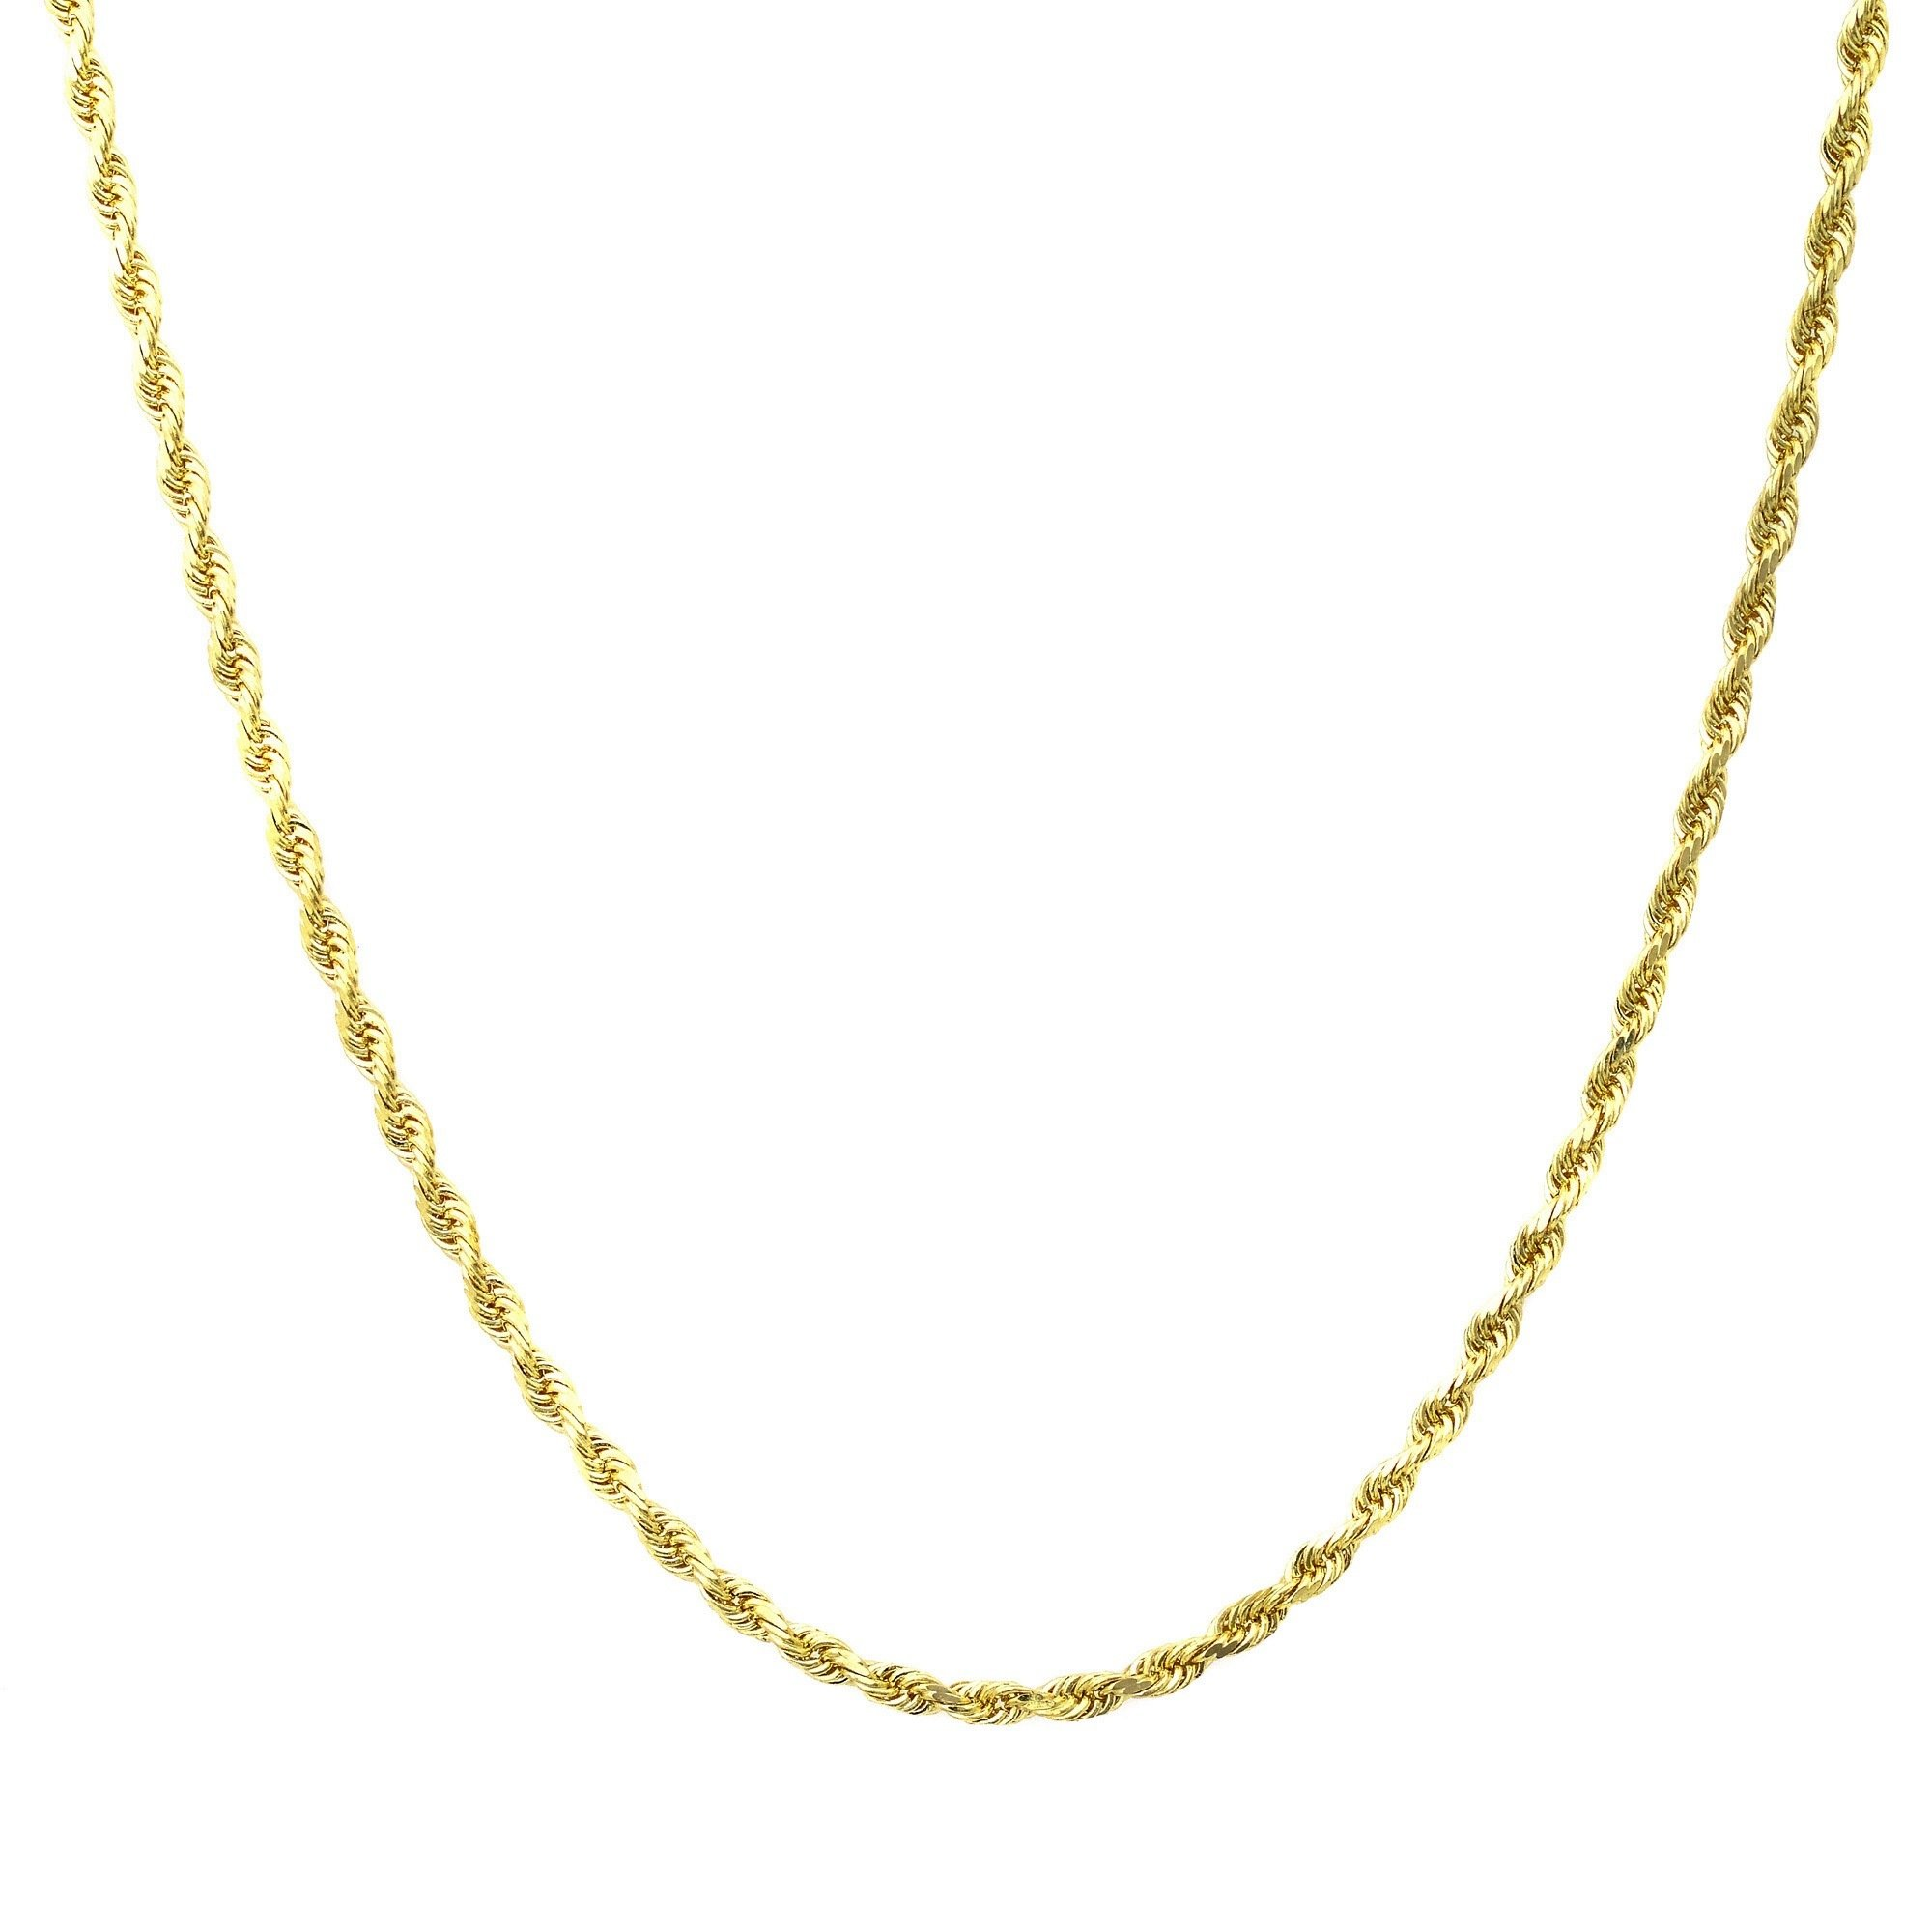 18K Yellow Gold 1.5MM Diamond Cut Rope Chain Necklace - Made in Italy -16''-24'' (22.0)